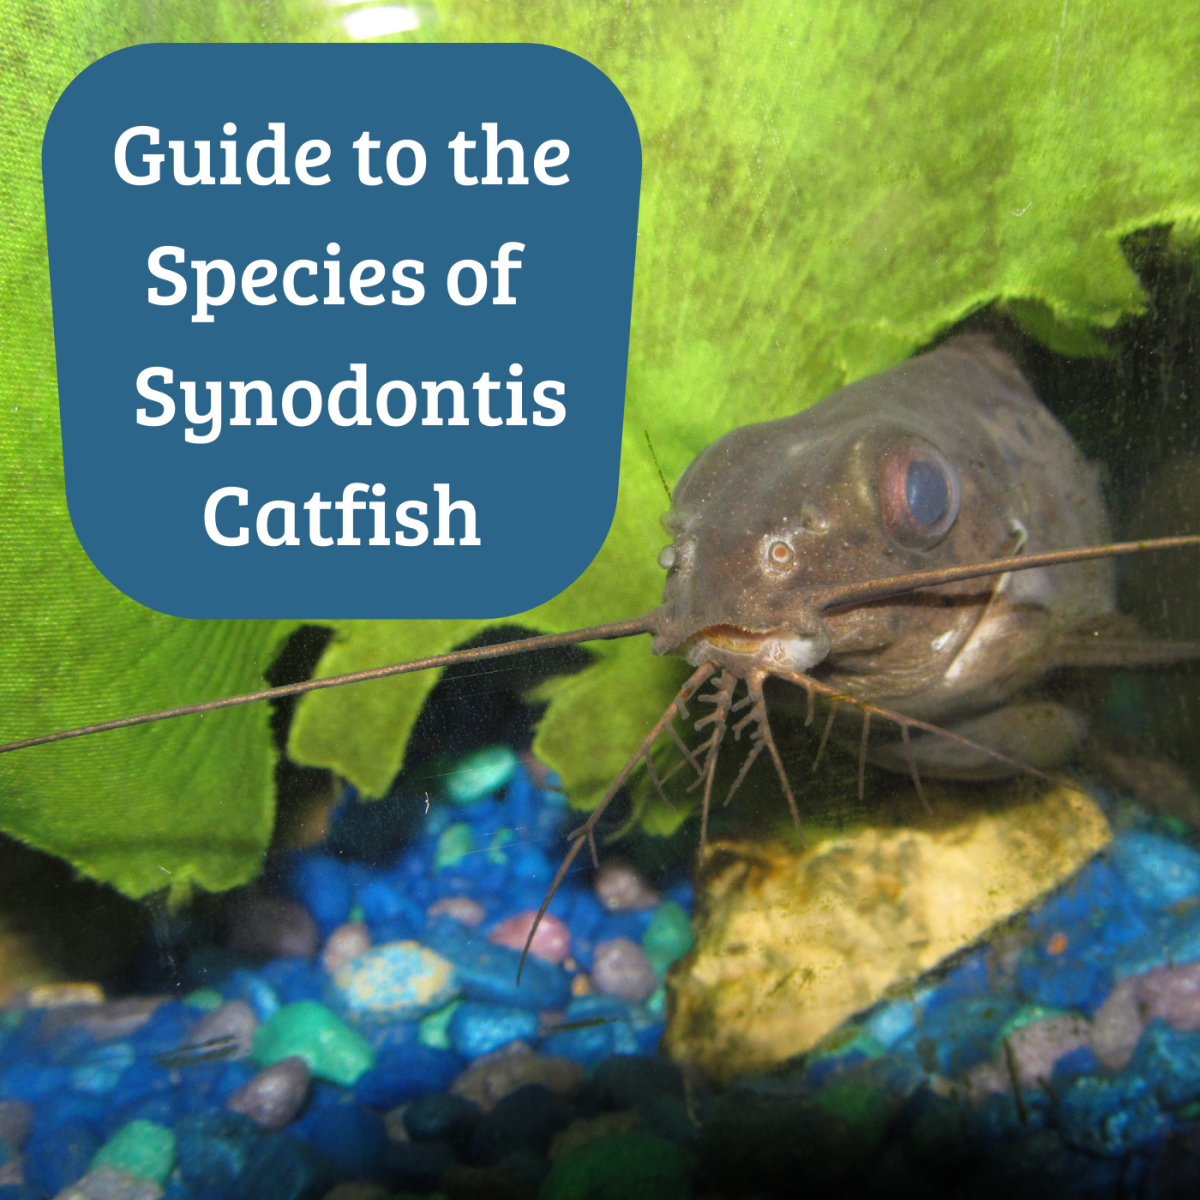 There are many species of this catfish. Shown above is Synodontis eupterus, which you can read about below.